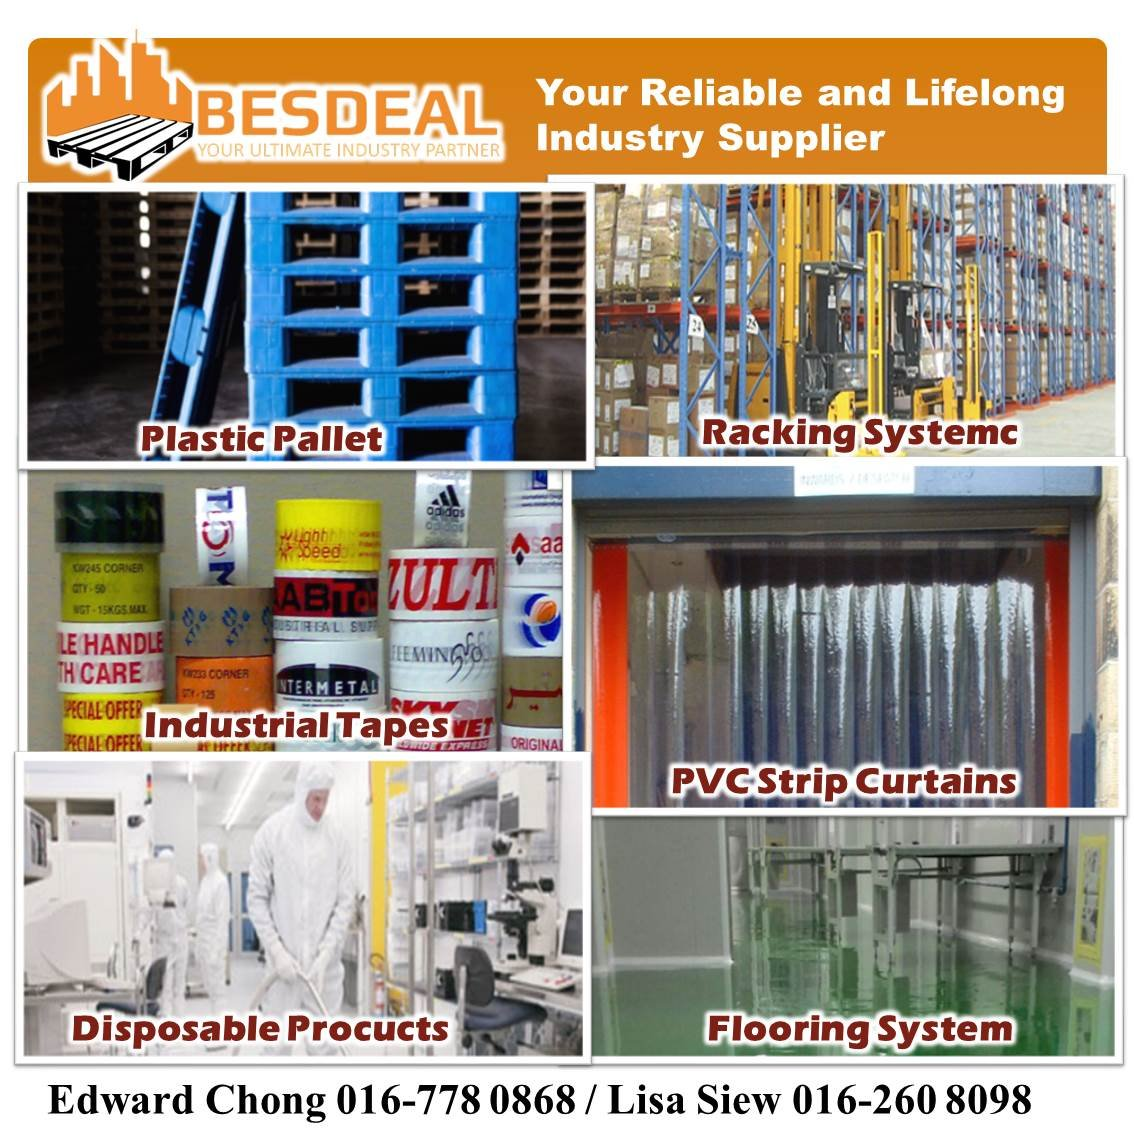 About Besdeal Industry Products and Services